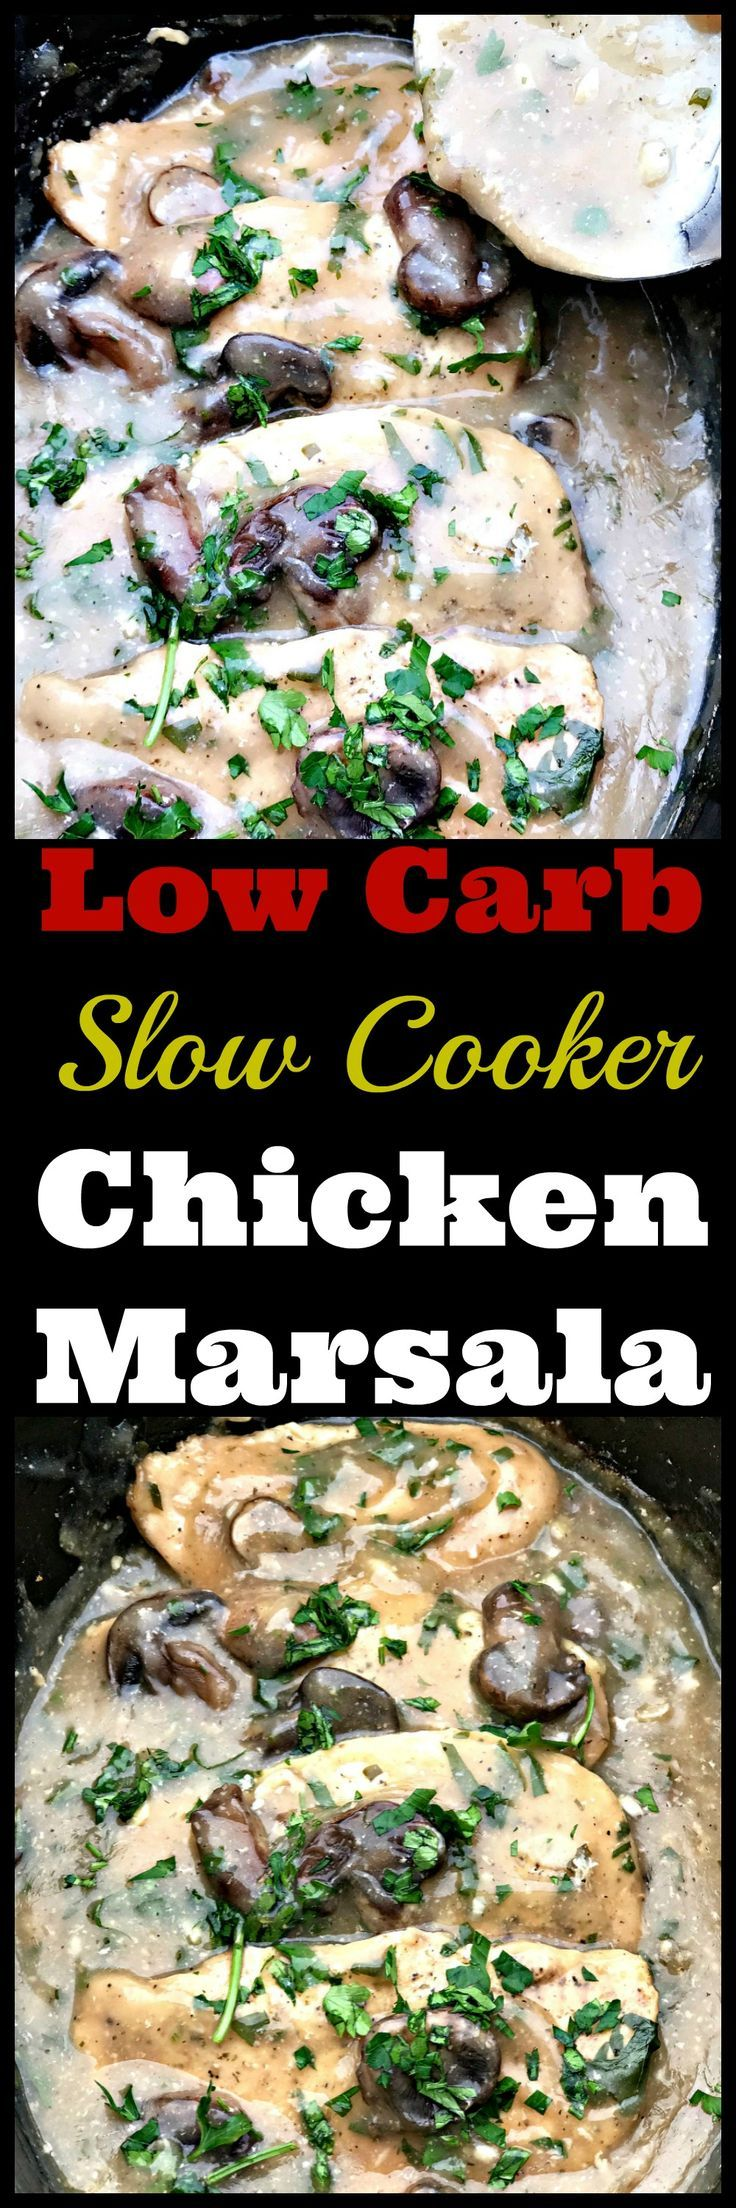 rich and savory chicken with marsala wine sauce